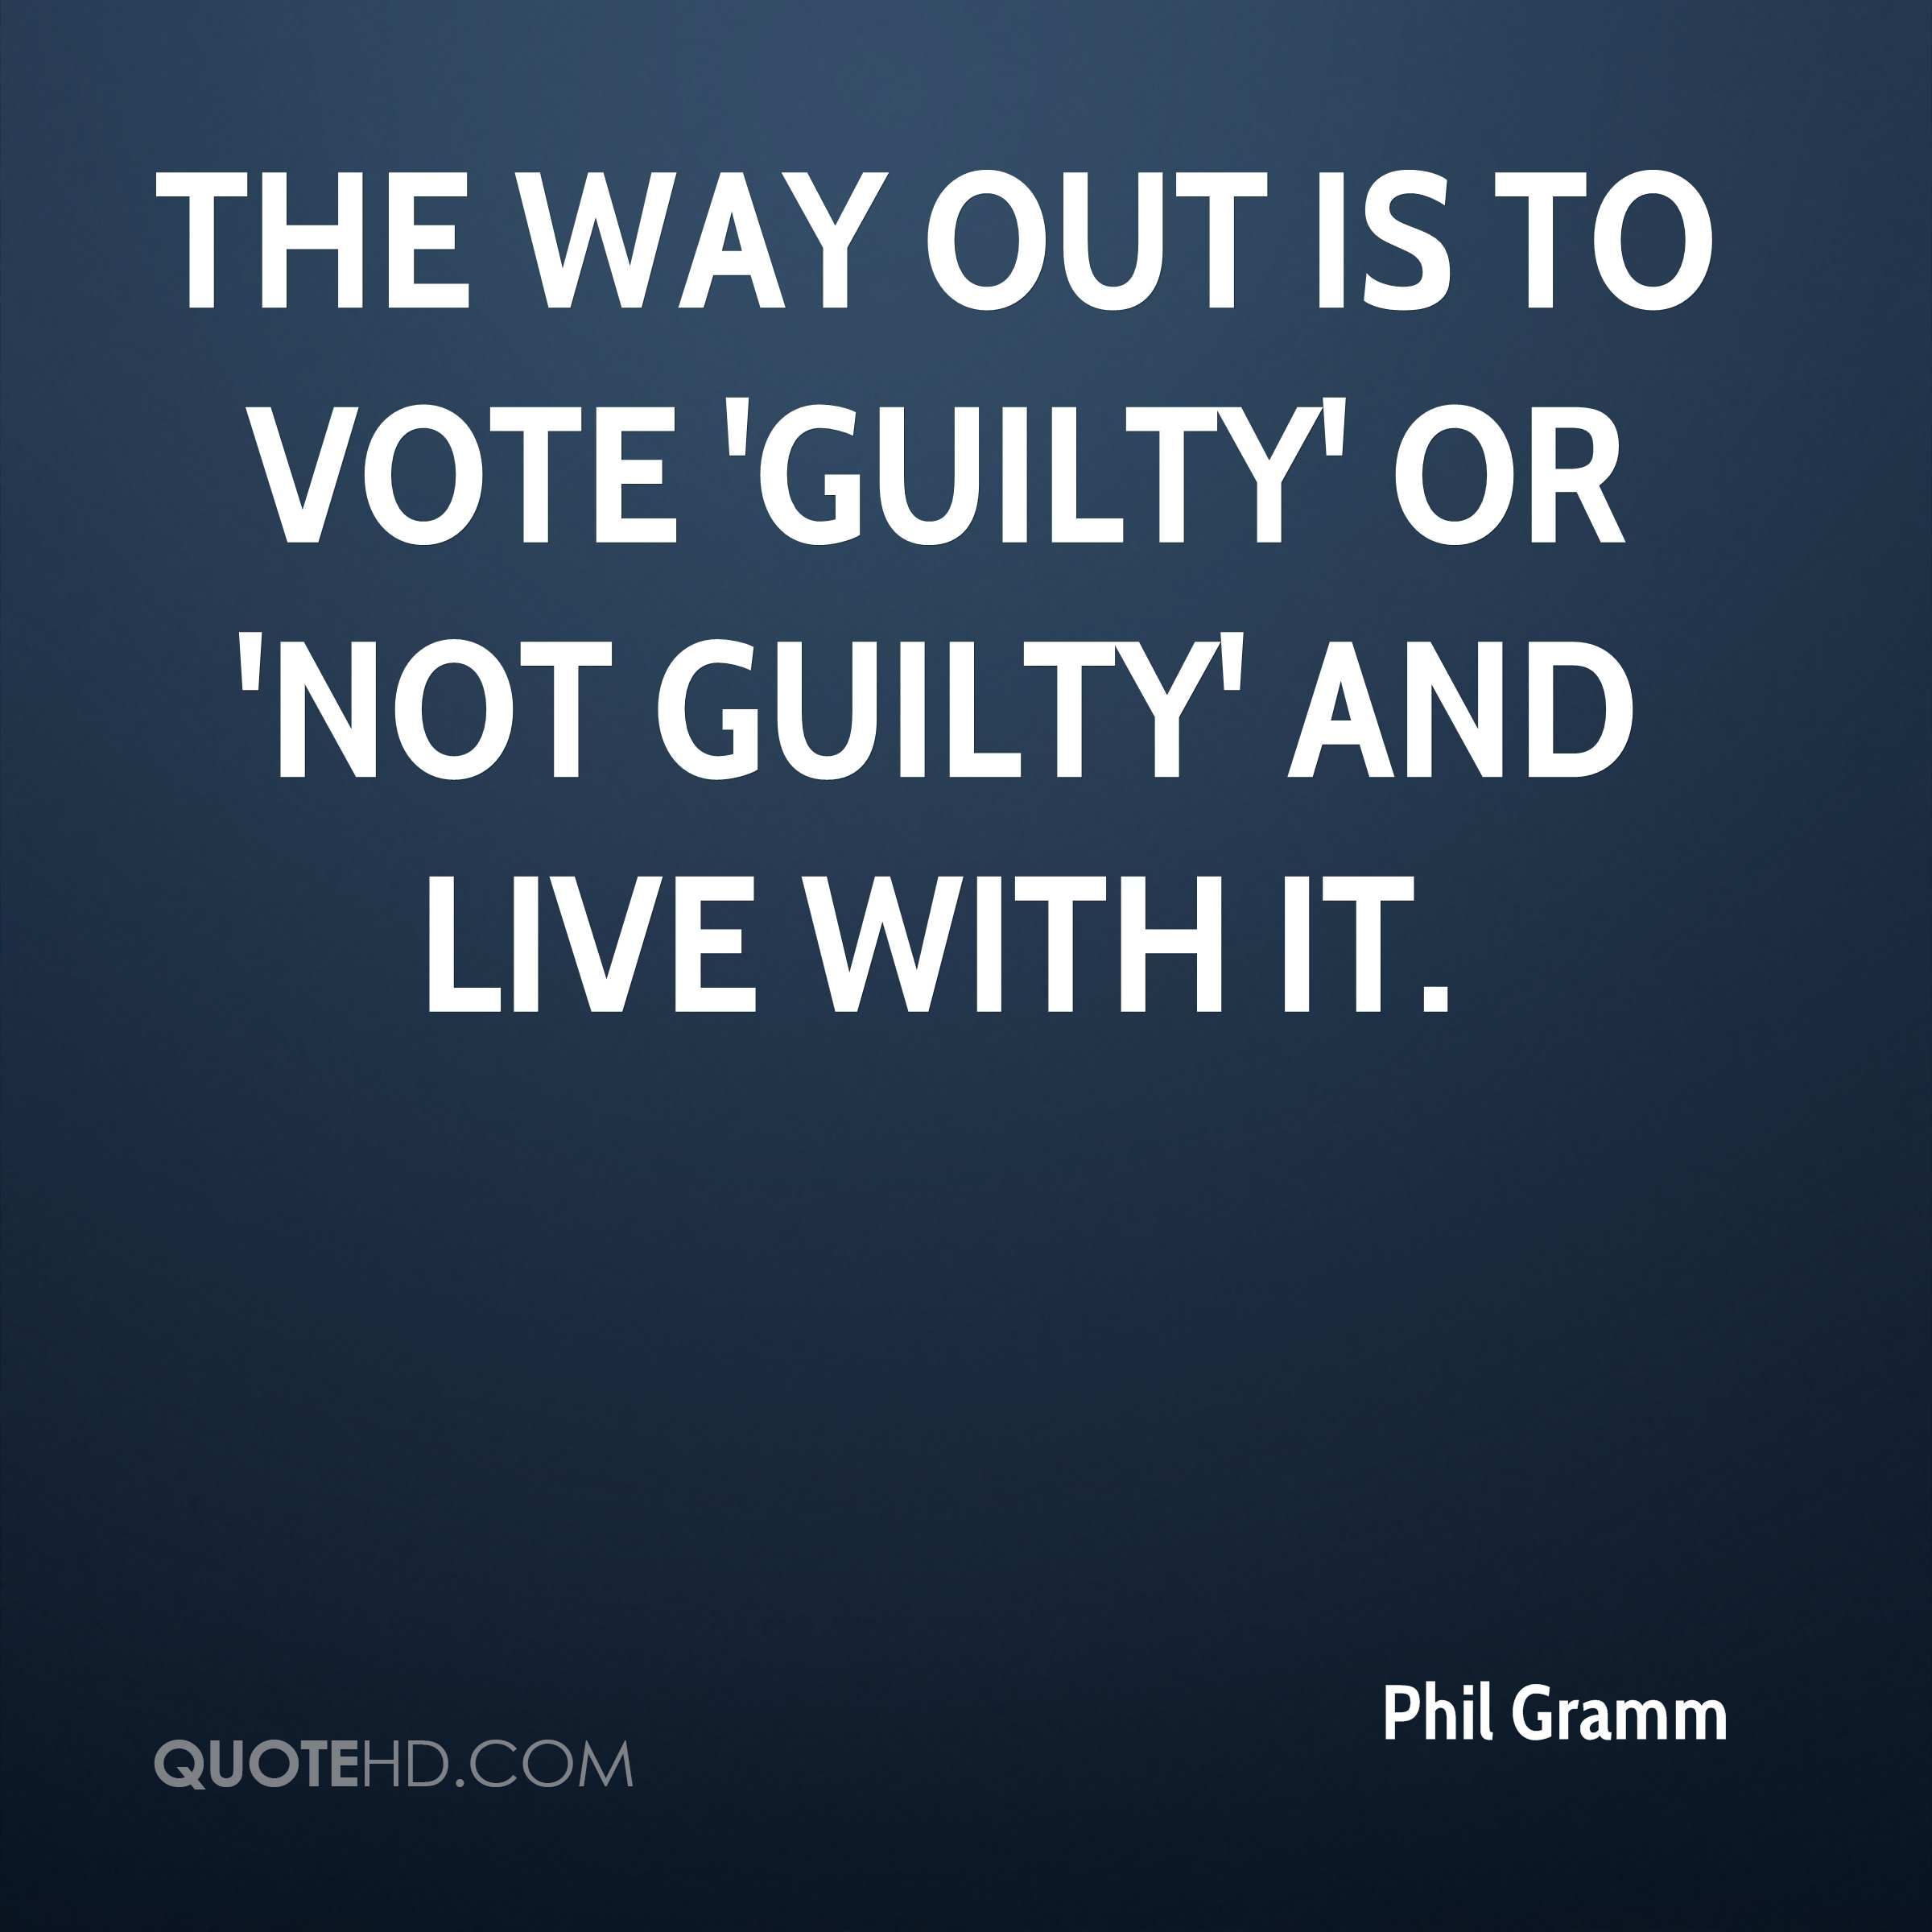 The way out is to vote 'guilty' or 'not guilty' and live with it.